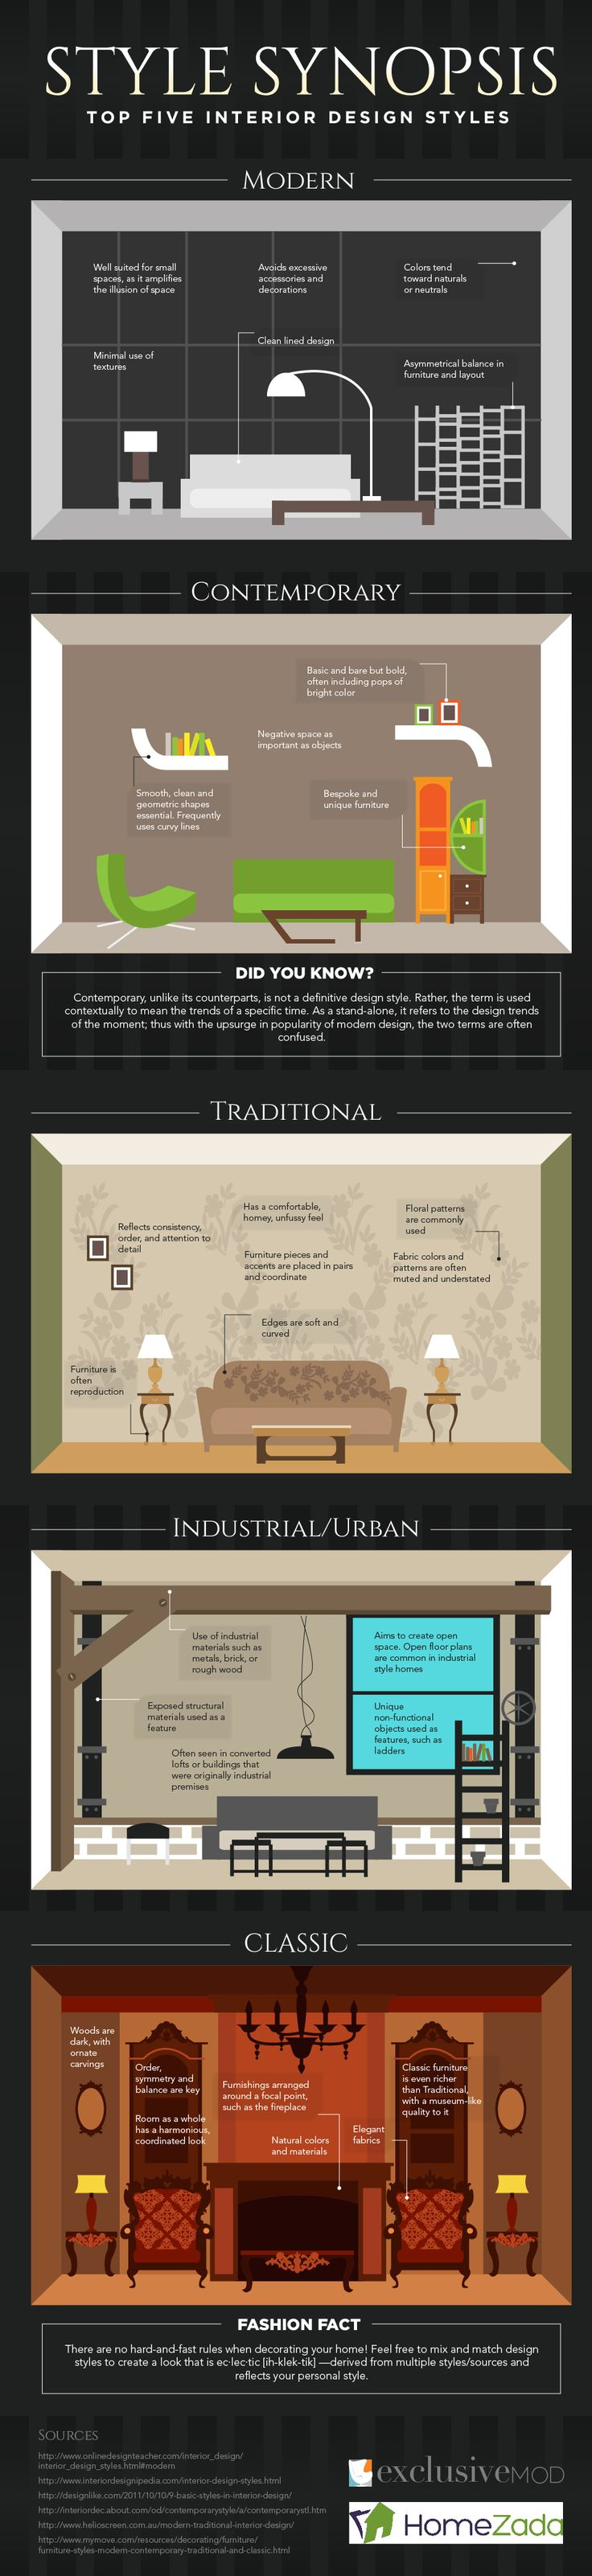 Top five interior design styles: which one describes yours?